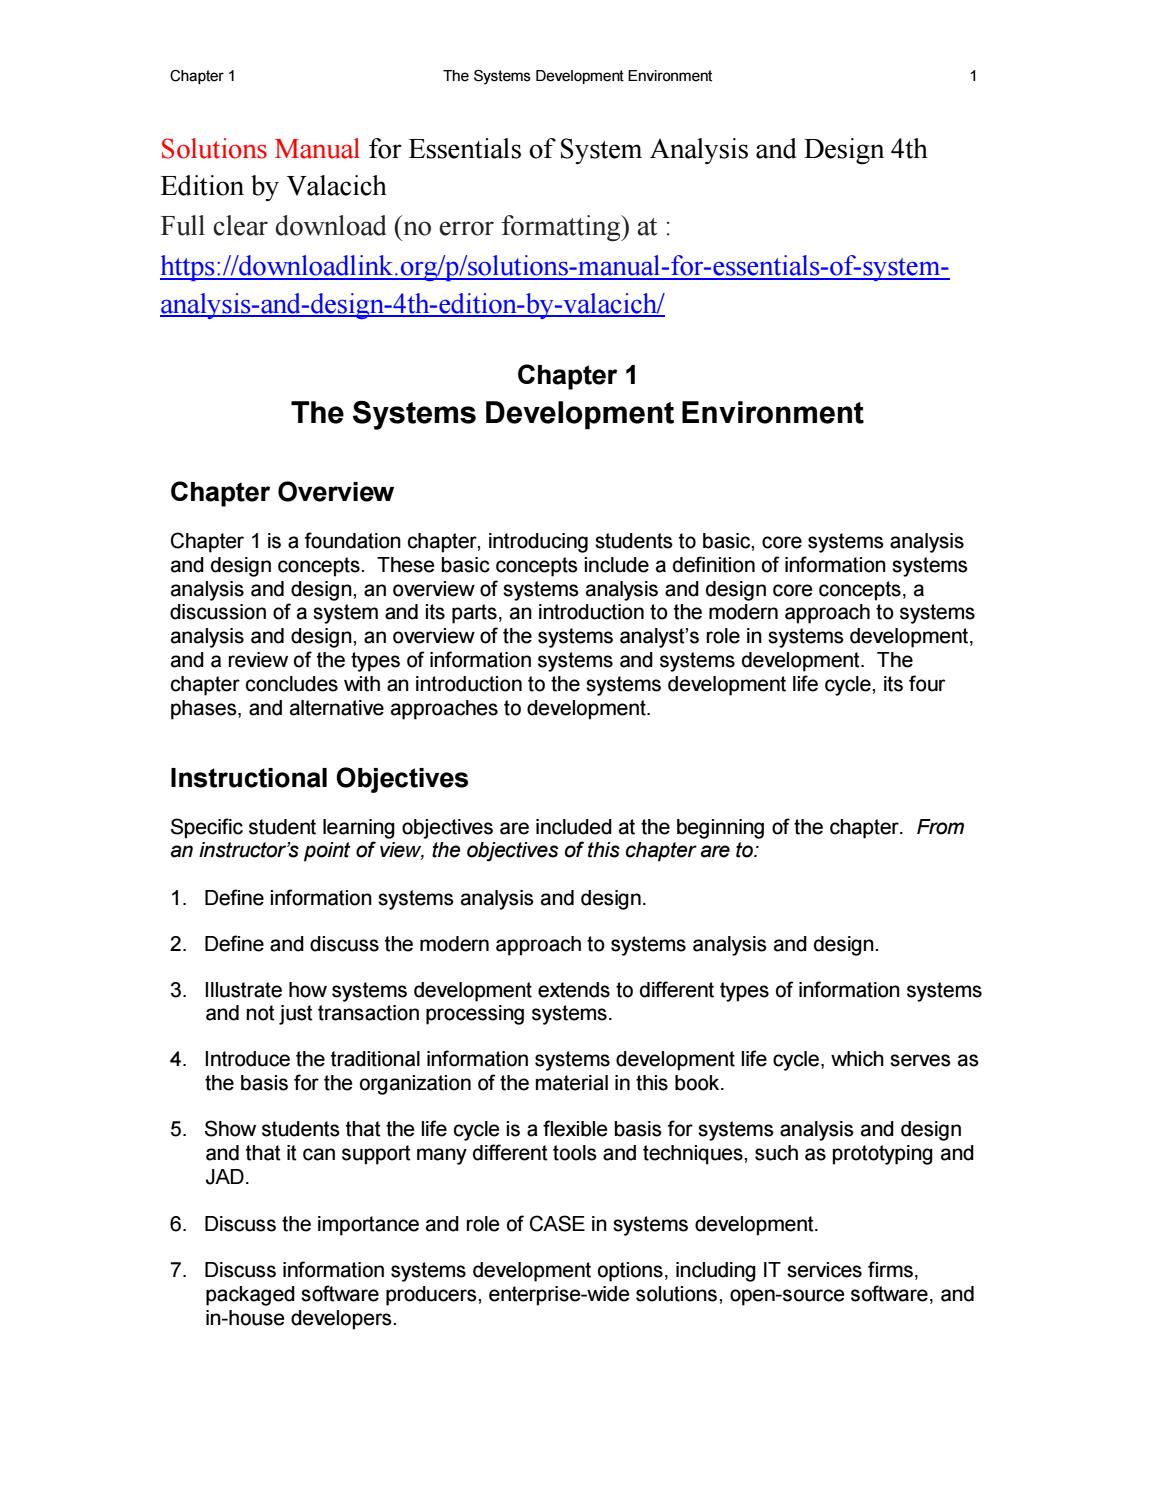 Solutions Manual For Essentials Of System Analysis And Design 4th Edition By Valacich By Crush424 Issuu